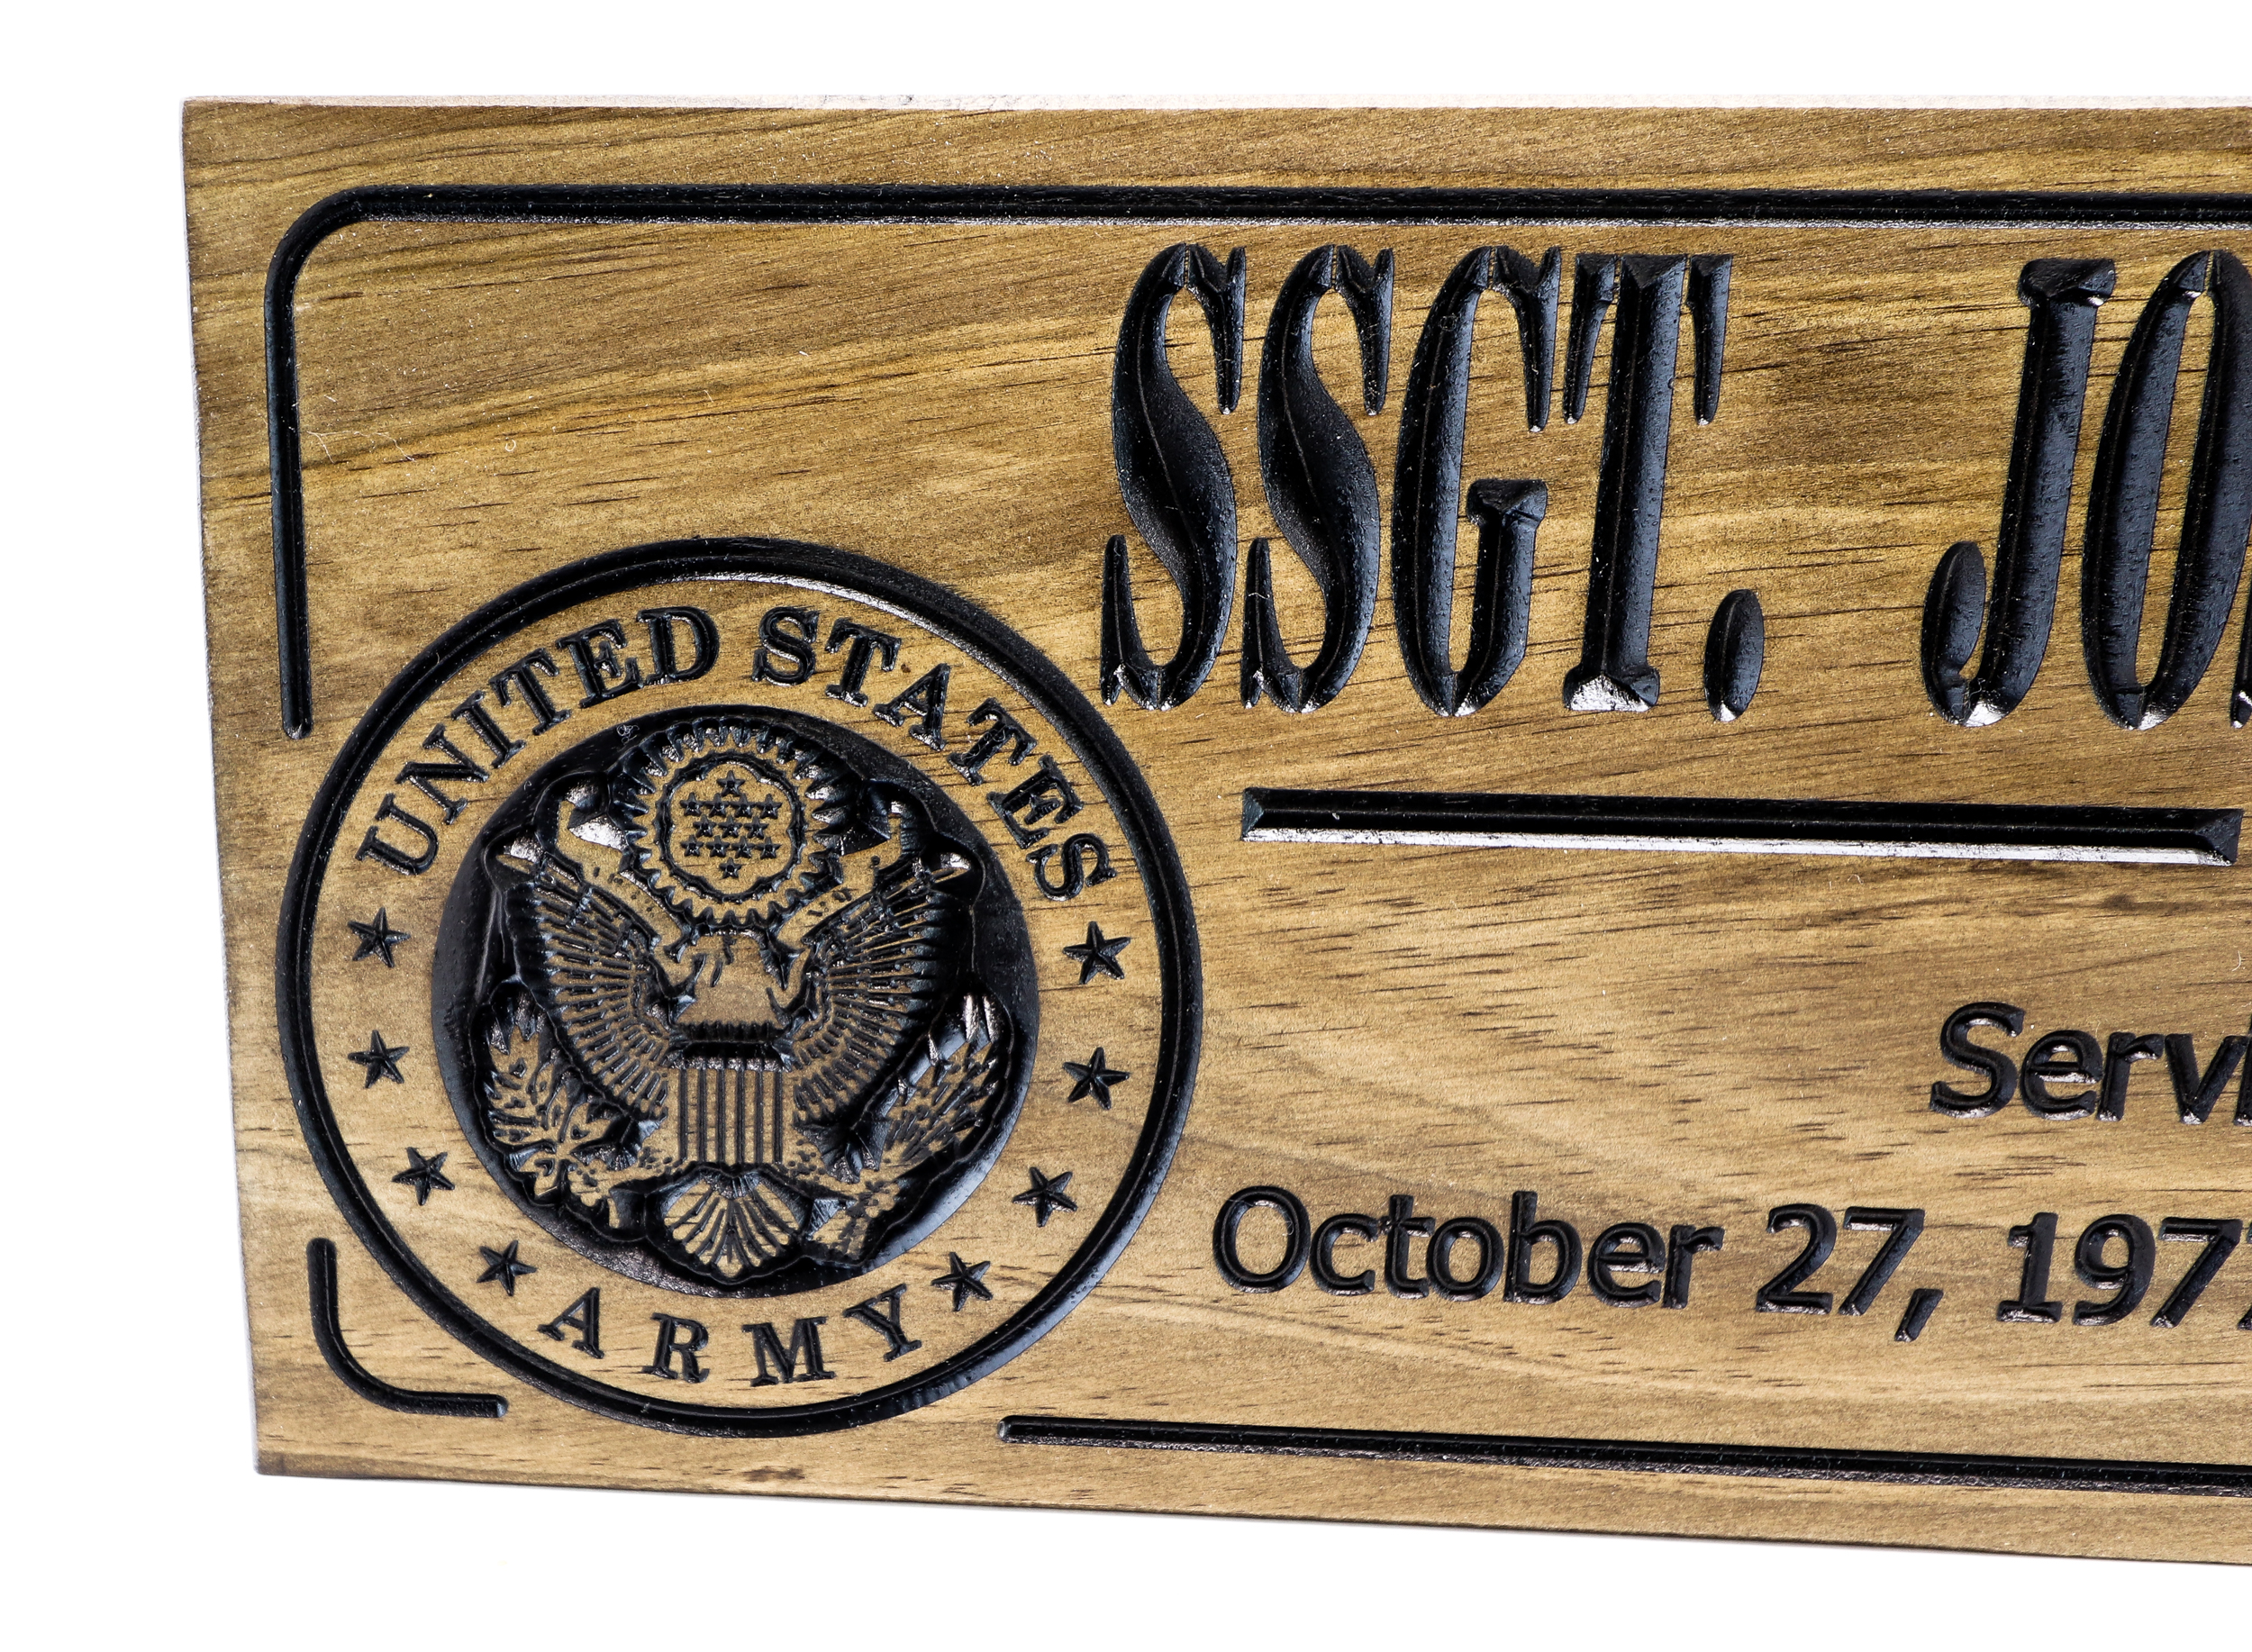 US ARMY | US ARMY RESERVE SIGN - Military sign